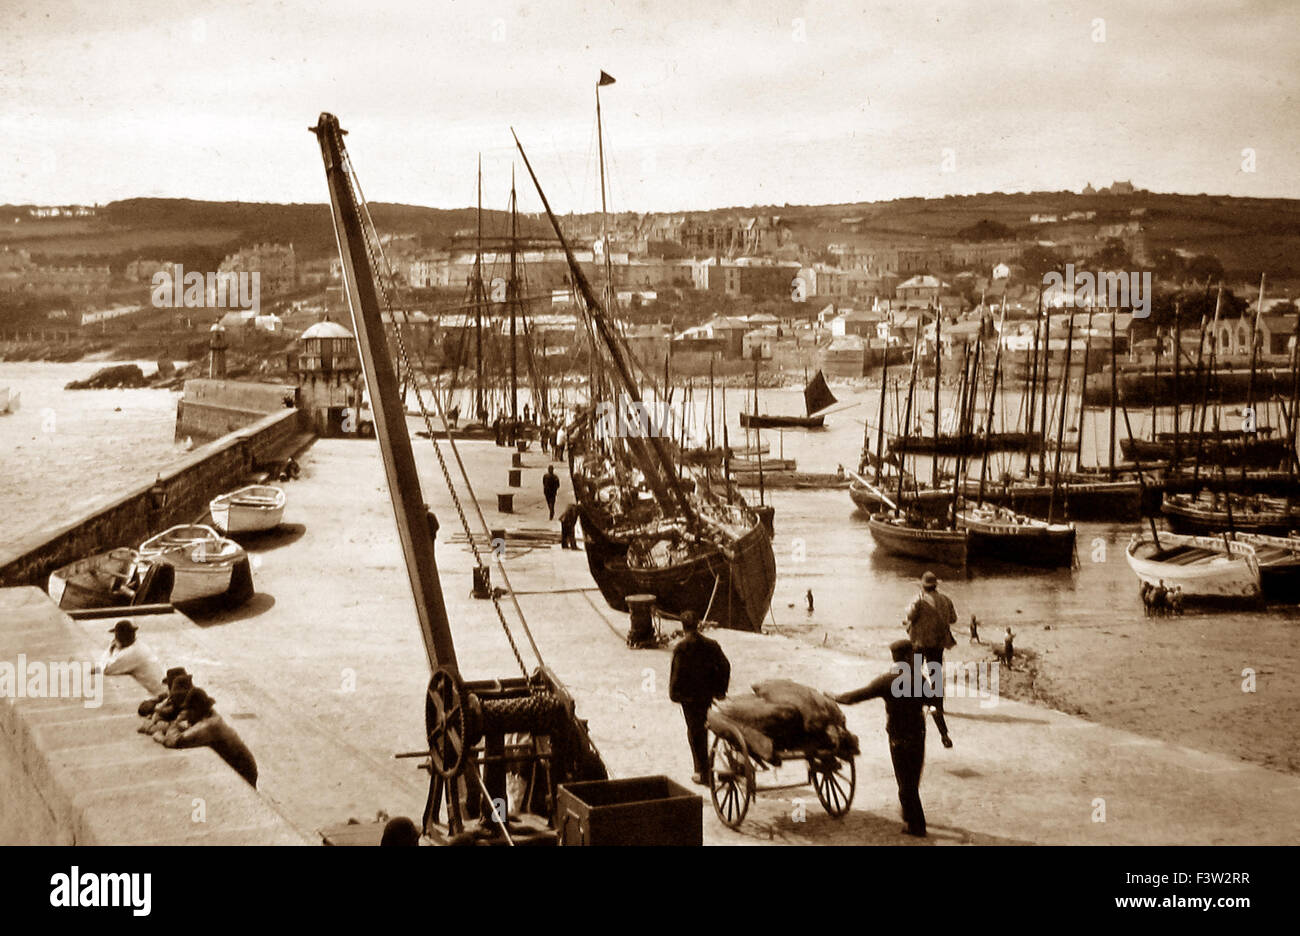 St. Ives Cornwall - early 1900s - Stock Image